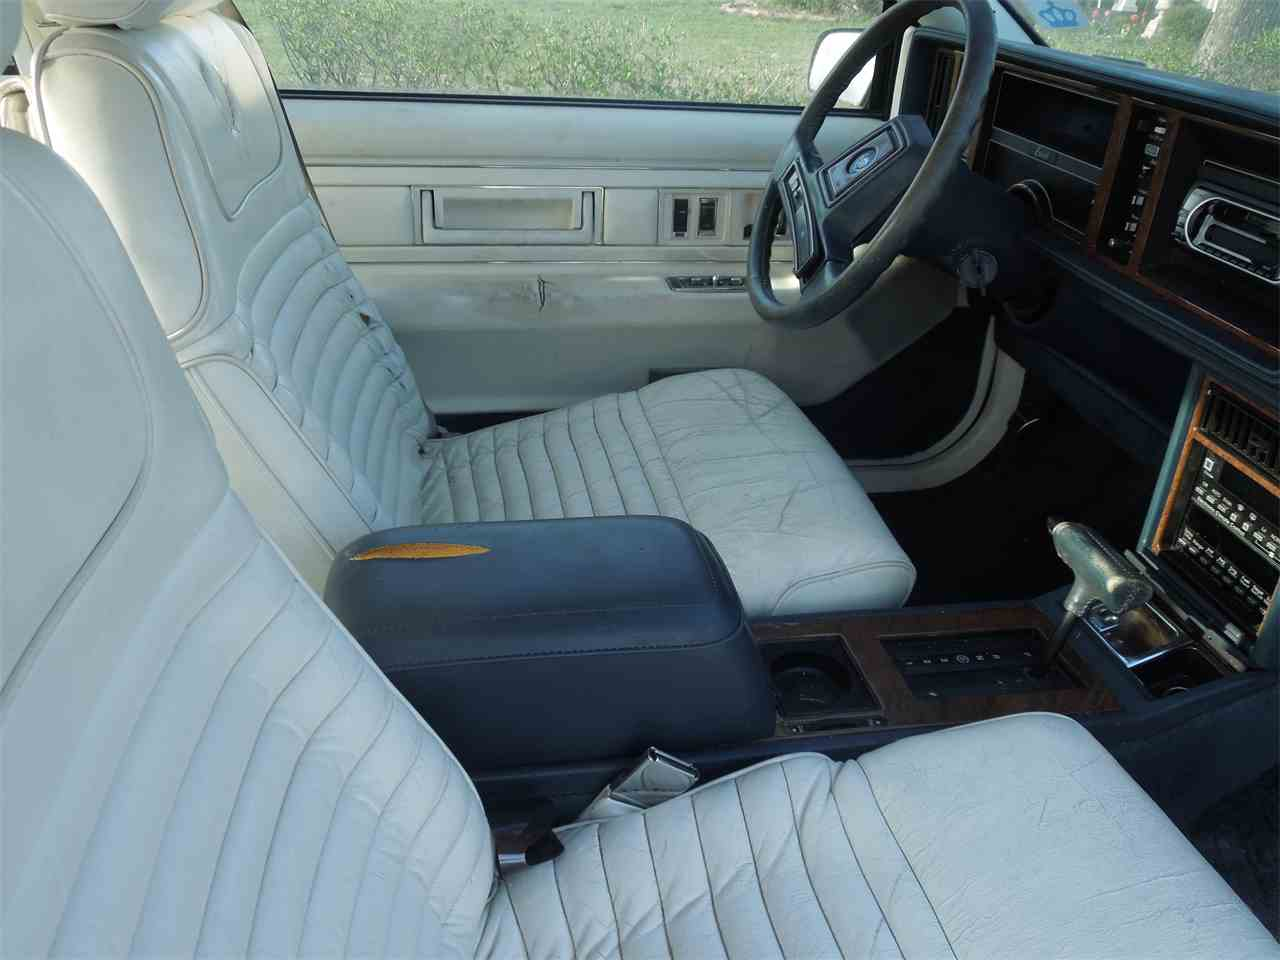 Large Picture of '89 Cadillac Eldorado located in LOCKWOOD Missouri Offered by a Private Seller - E88R